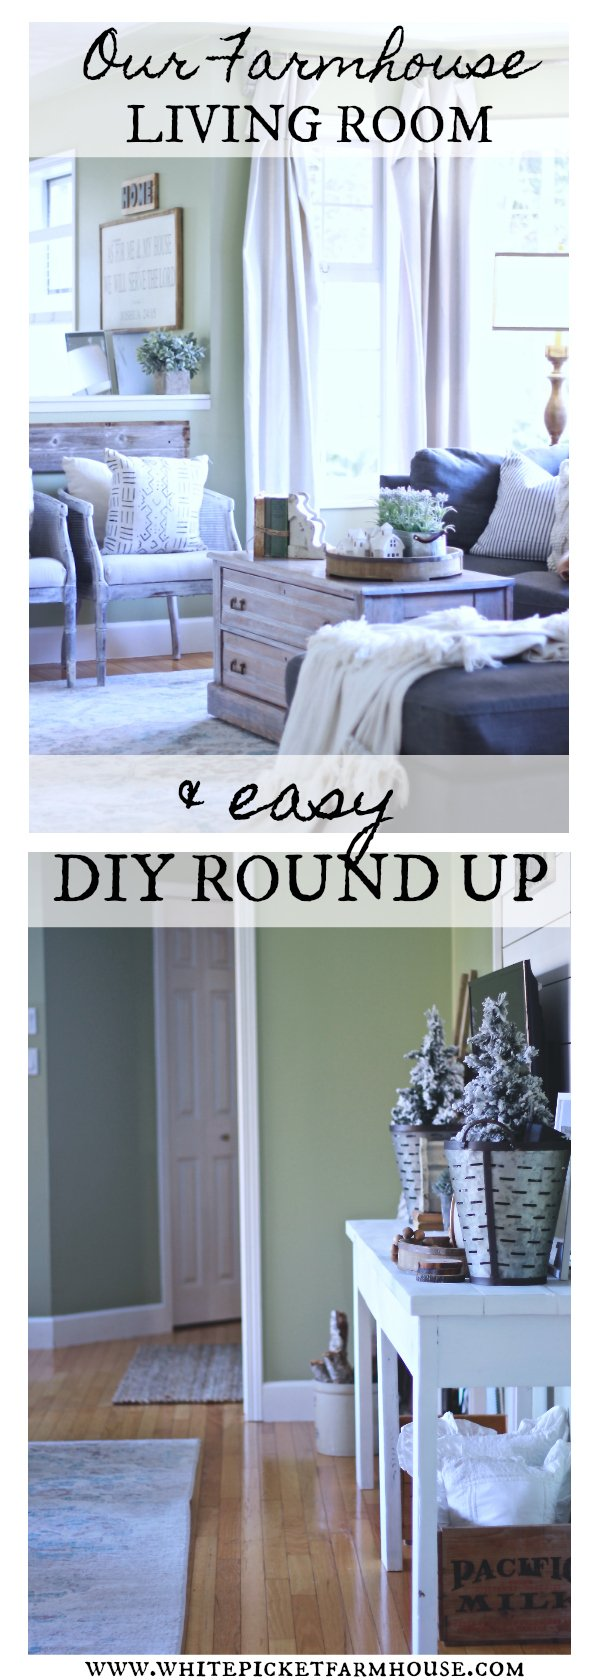 Our DIY Farmhouse Living Room. How We spent pennies on it and made it look amazing. DIY Roundup of all the projects from our Farmhouse Living Room www.whitepicketfarmhouse.com #FarmhouseLivingRoom #DIY #EasyDIYs #CheapDIYS